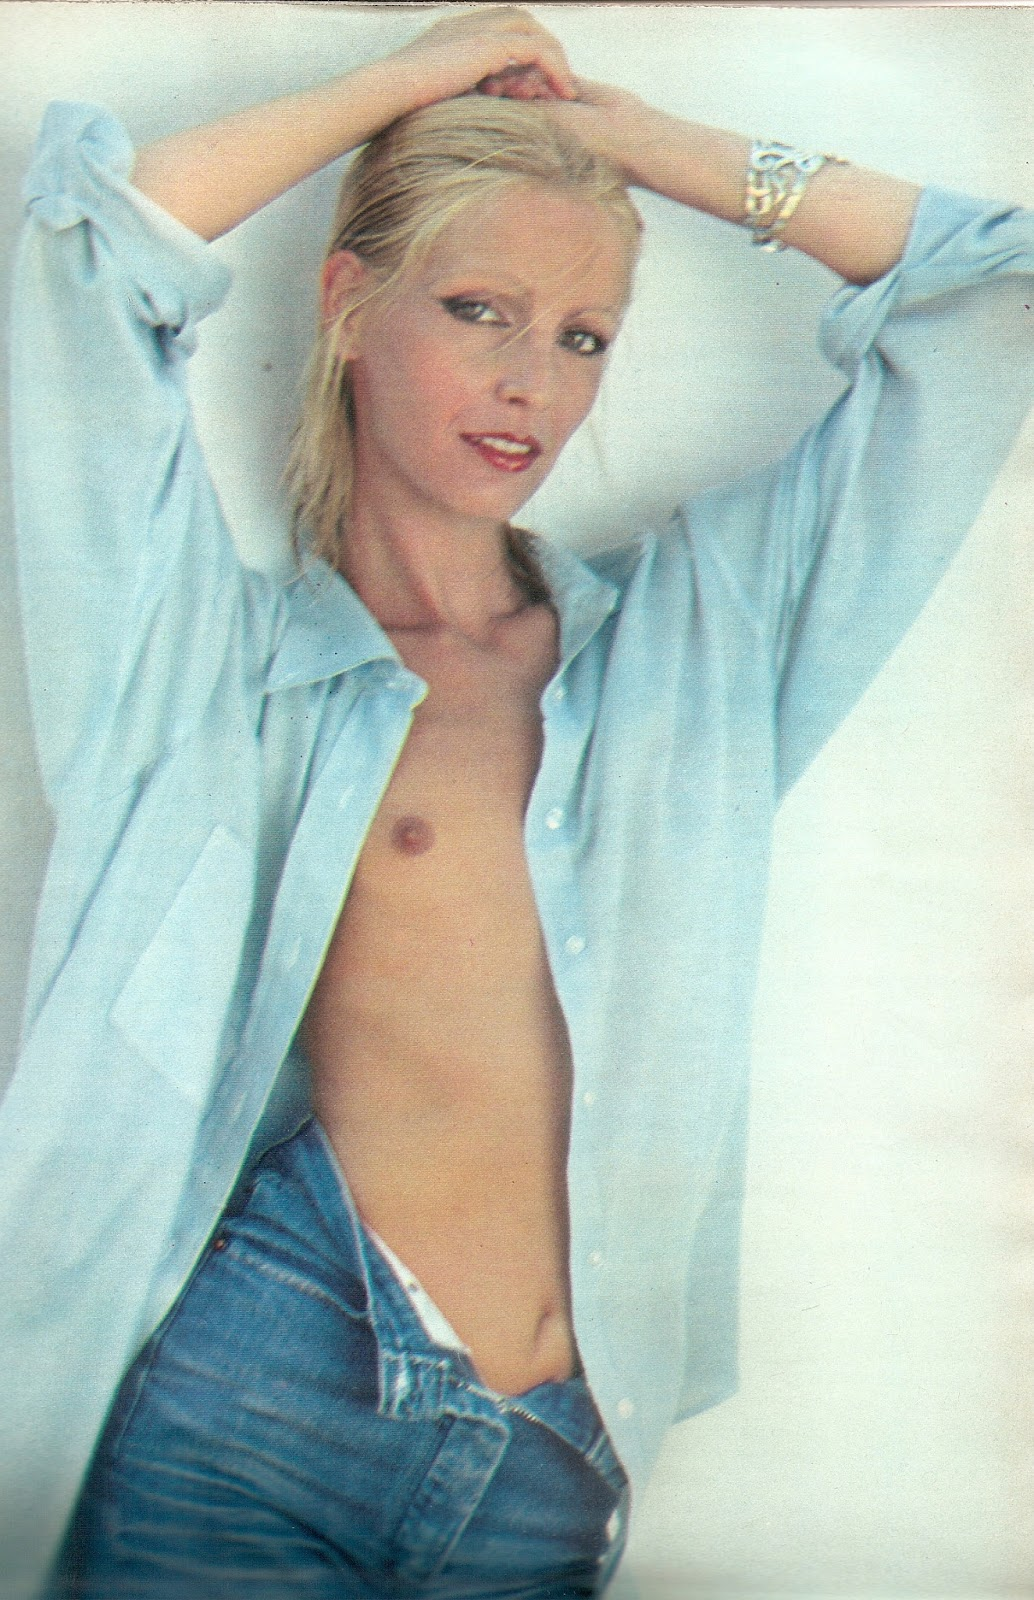 Patty Pravo – Ads for Women Seeking Men